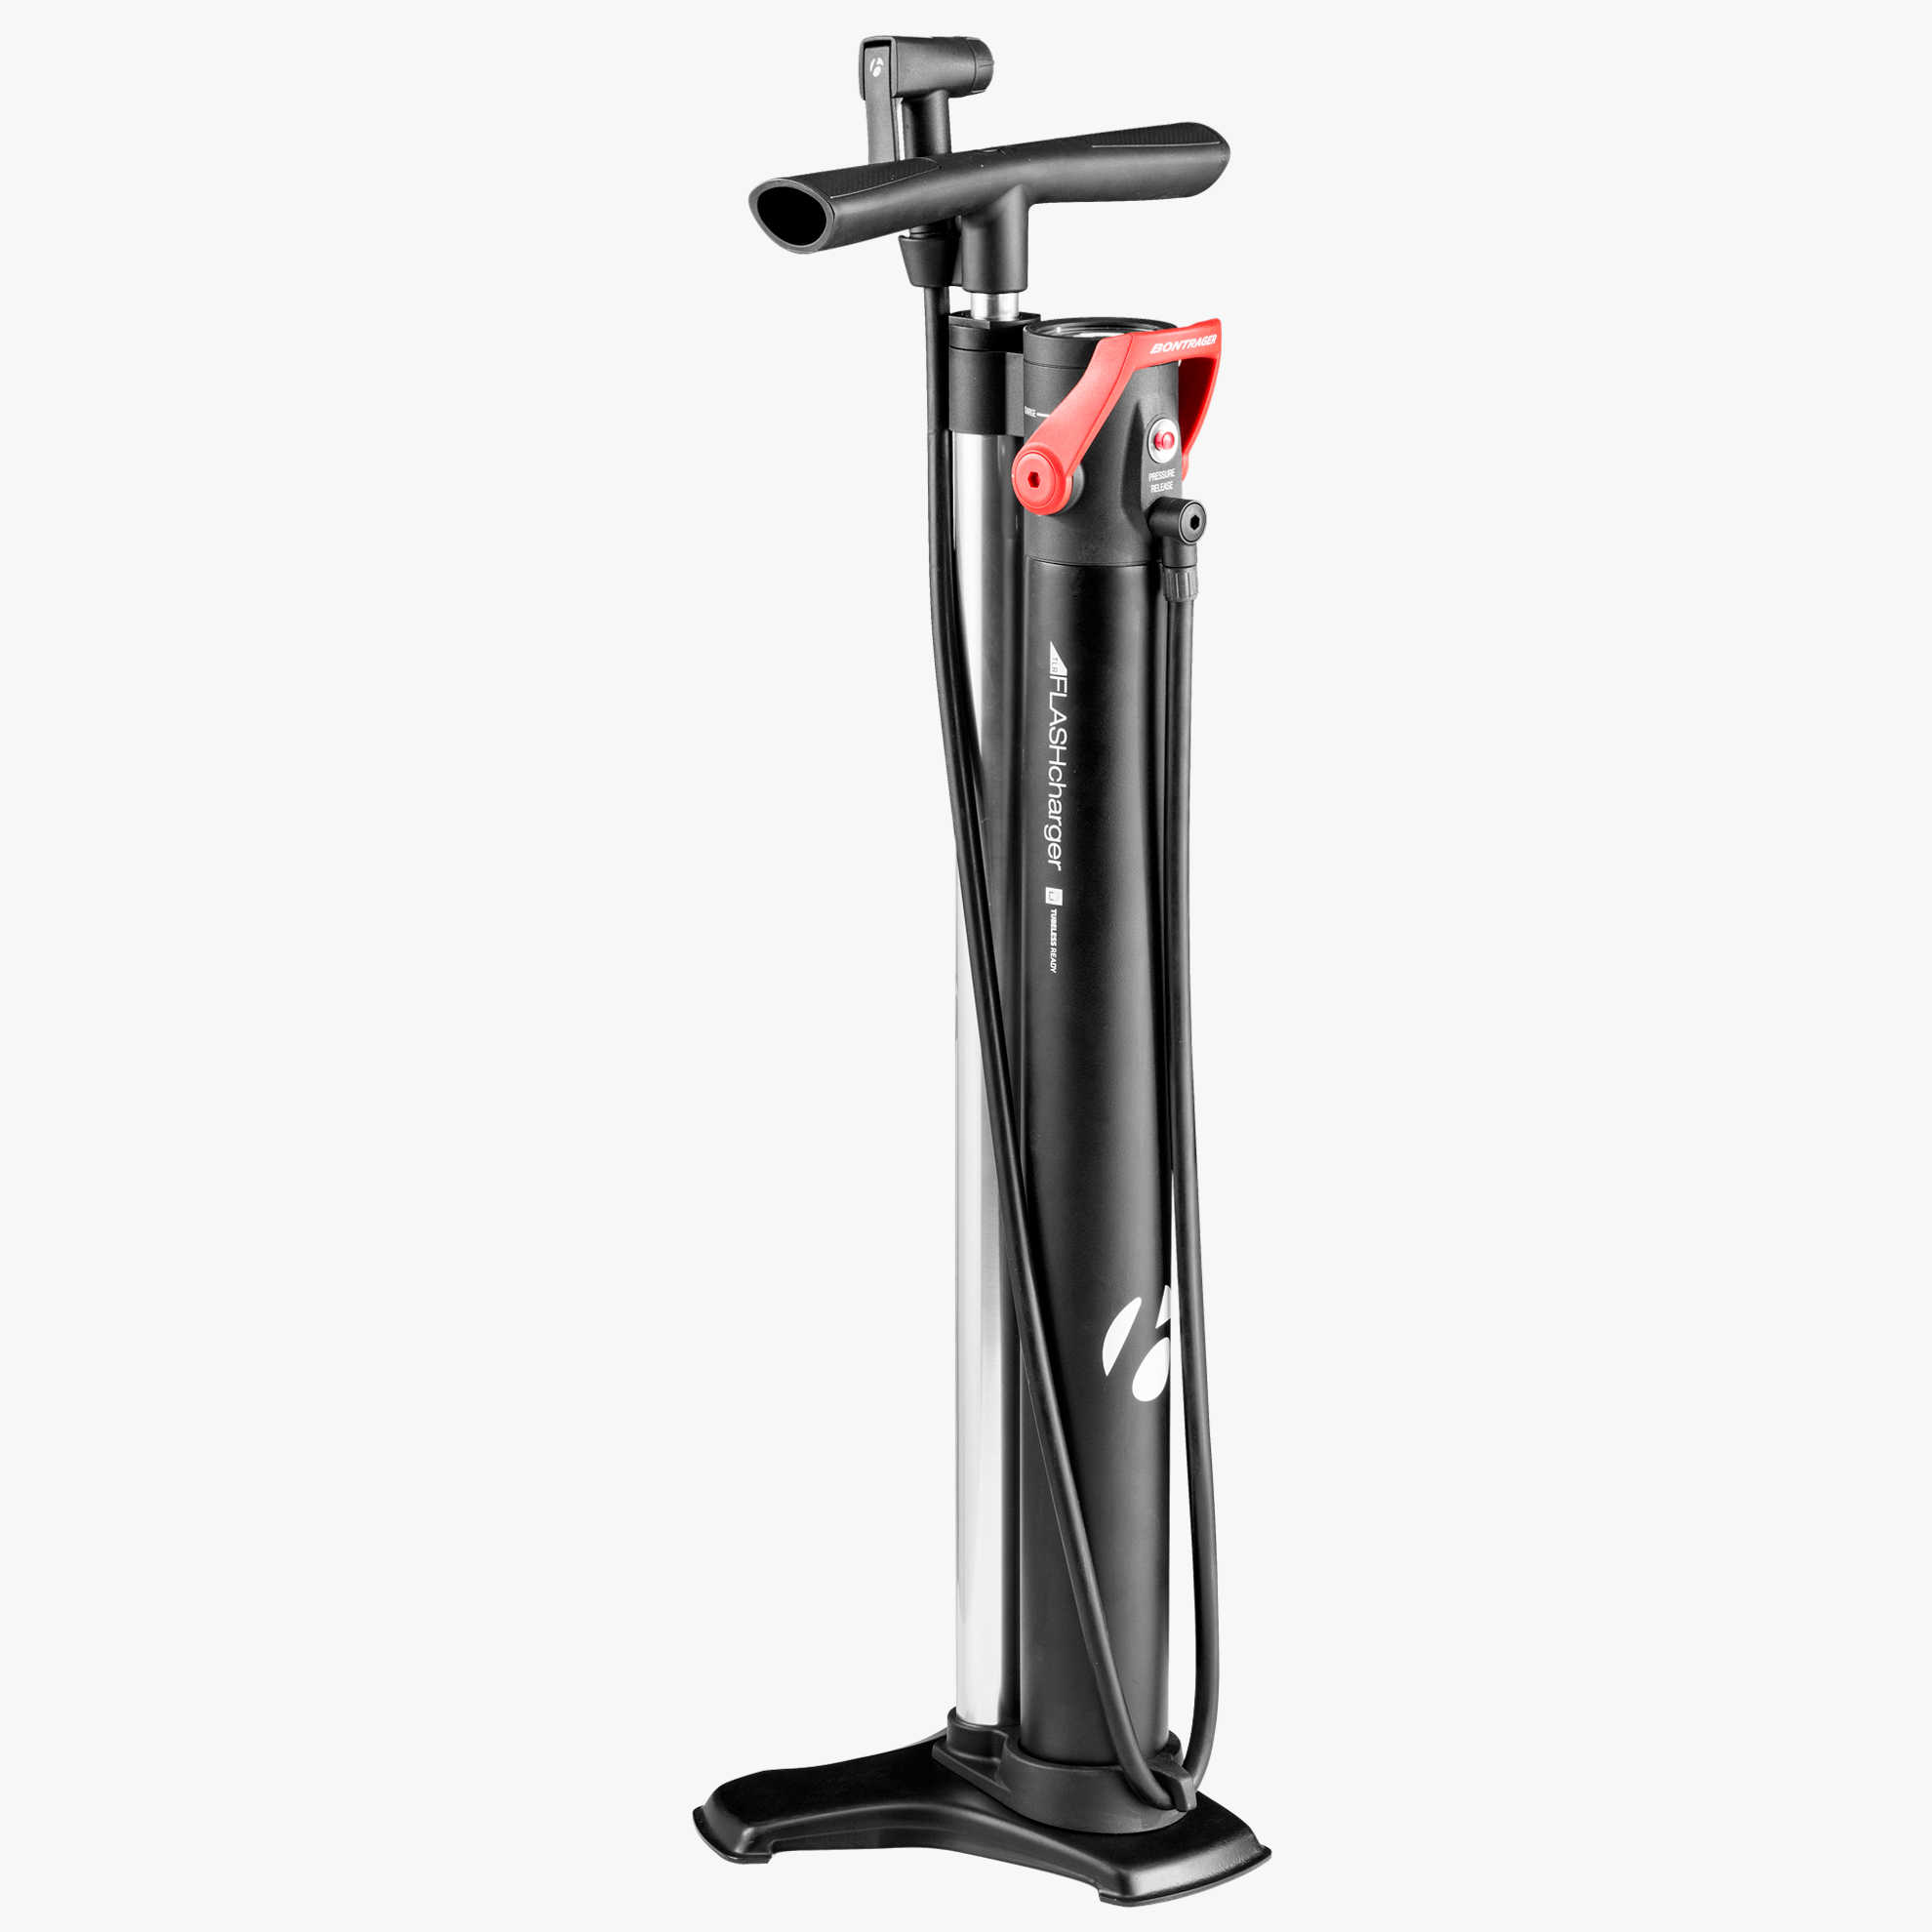 Bontrager Flash Charger Floor Pump